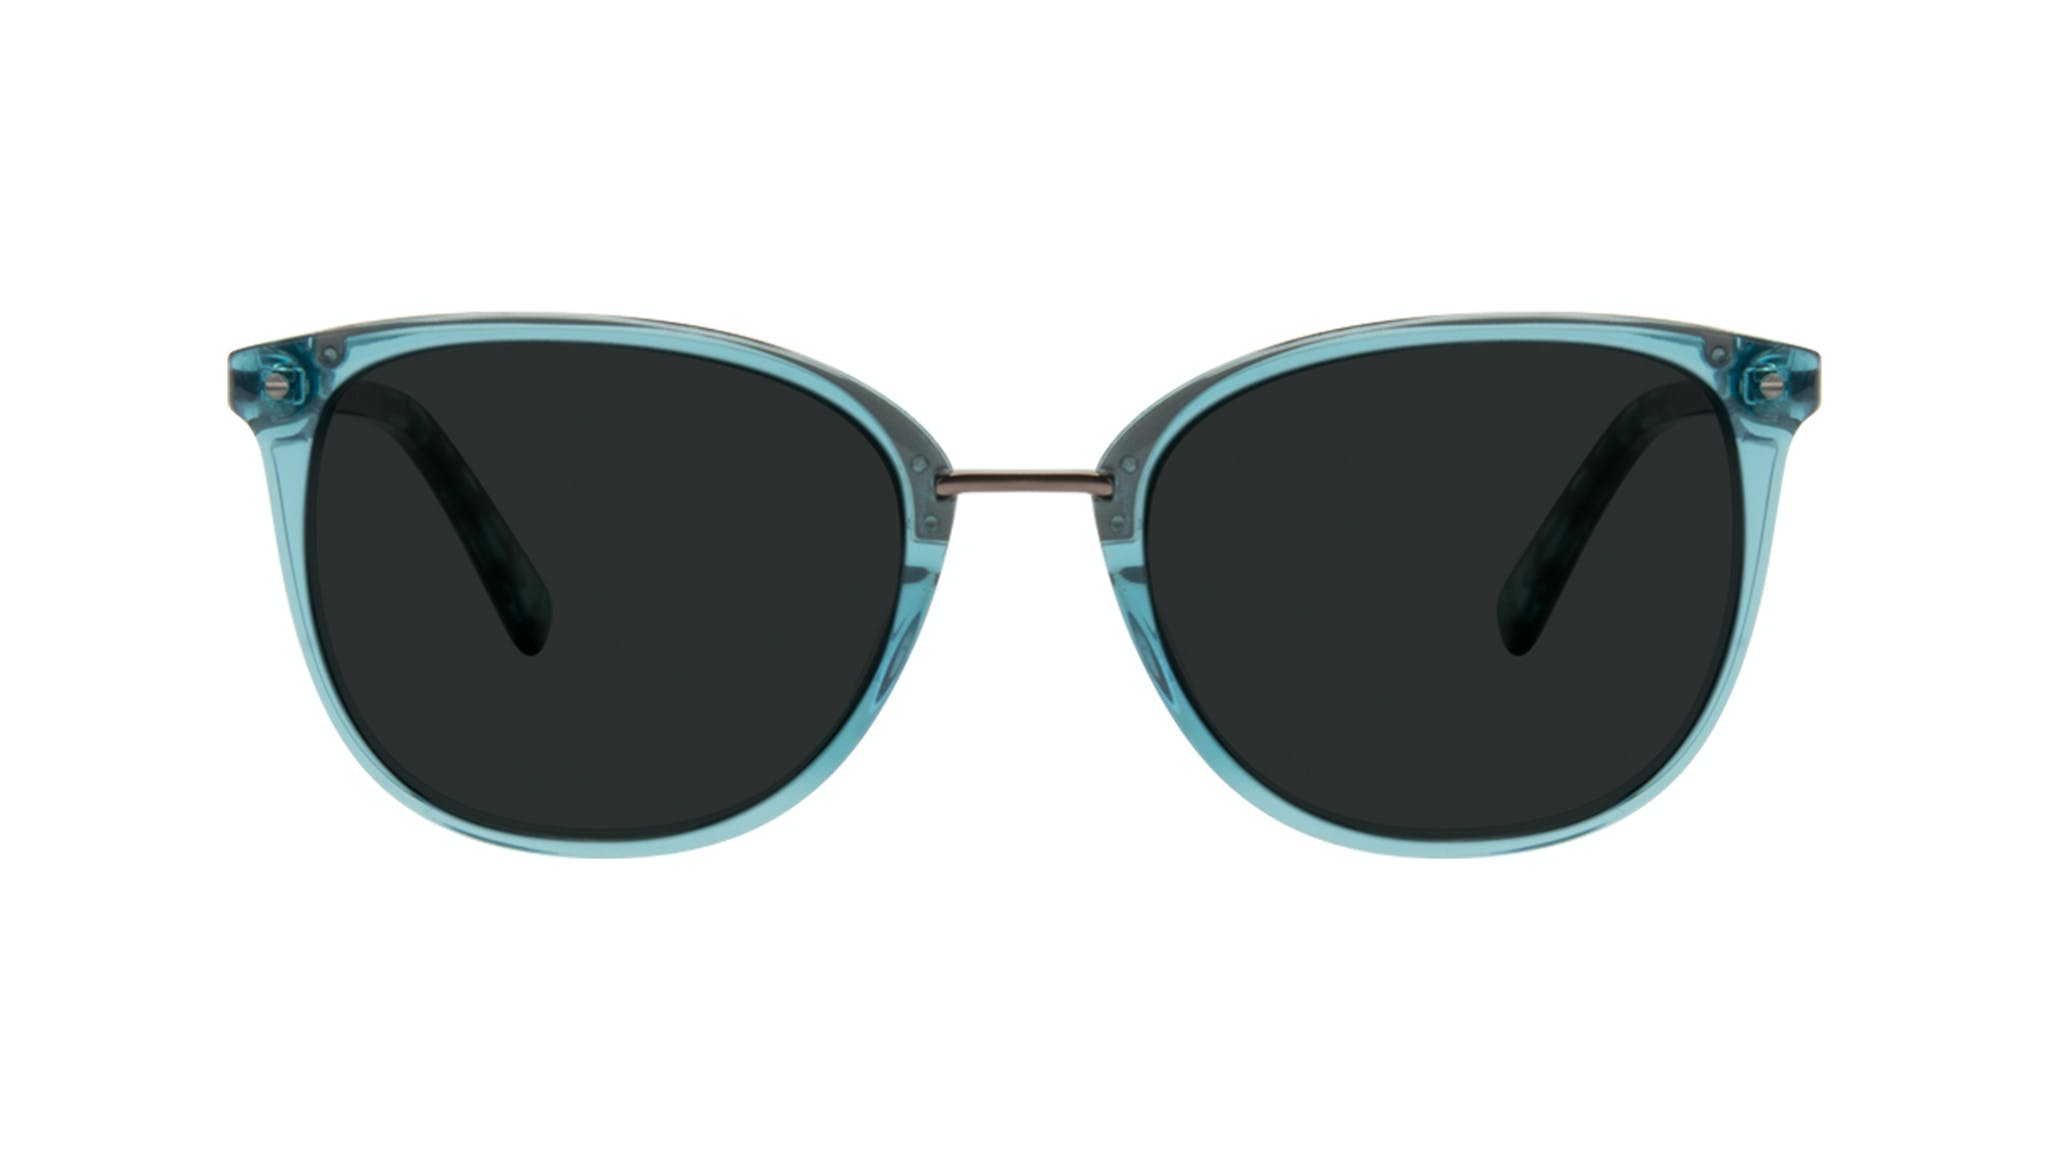 Affordable Fashion Glasses Square Round Sunglasses Women Bella Teal